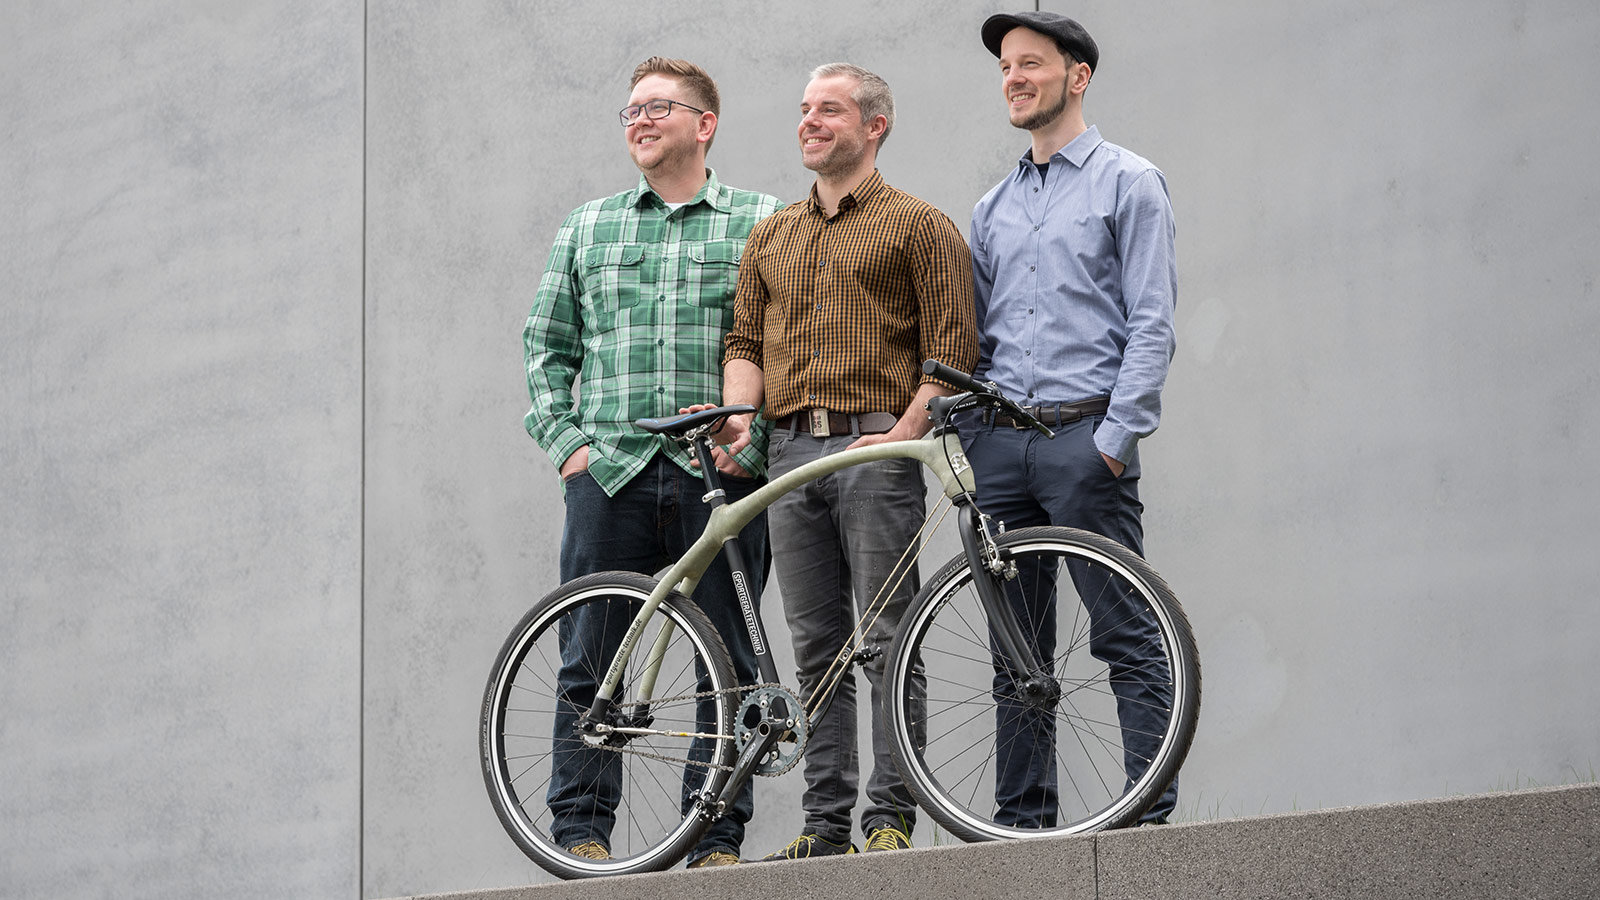 3 men stand behind a bicycle.